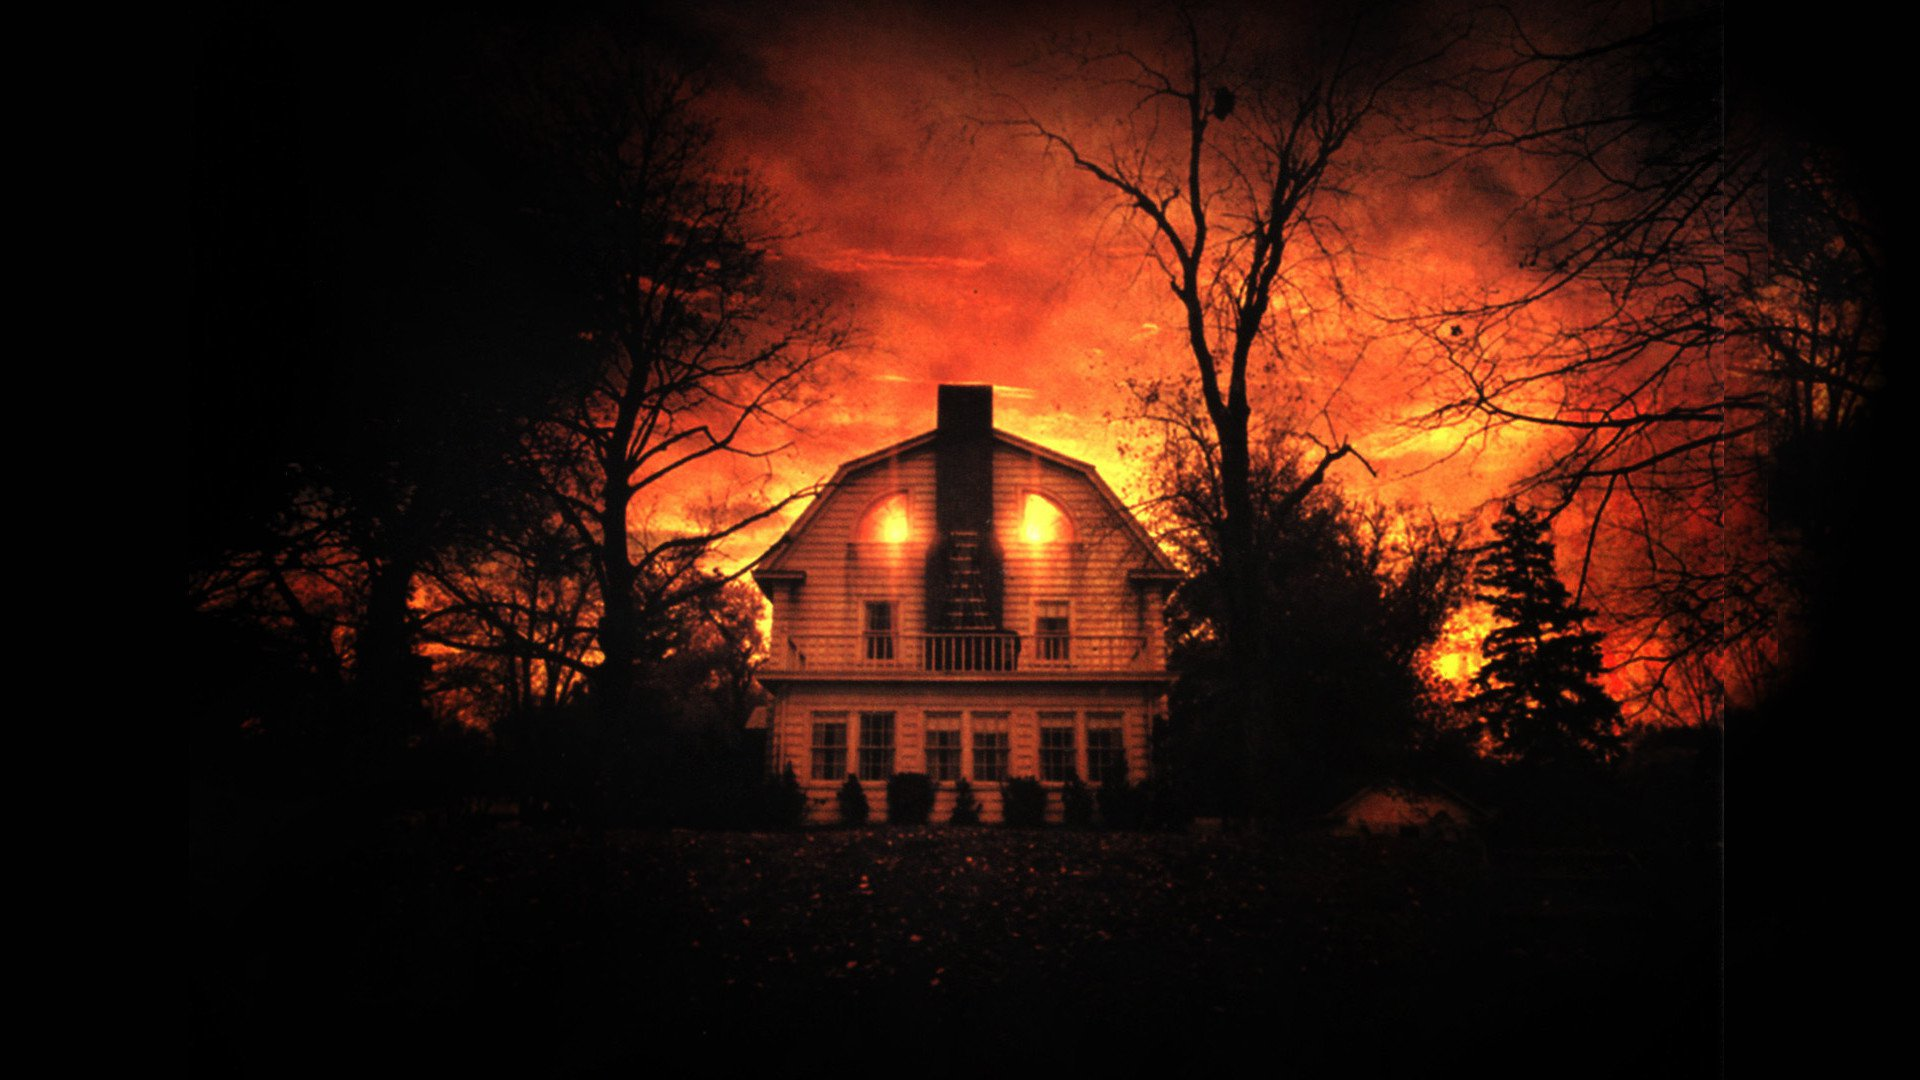 The Amityville Horror backdrop